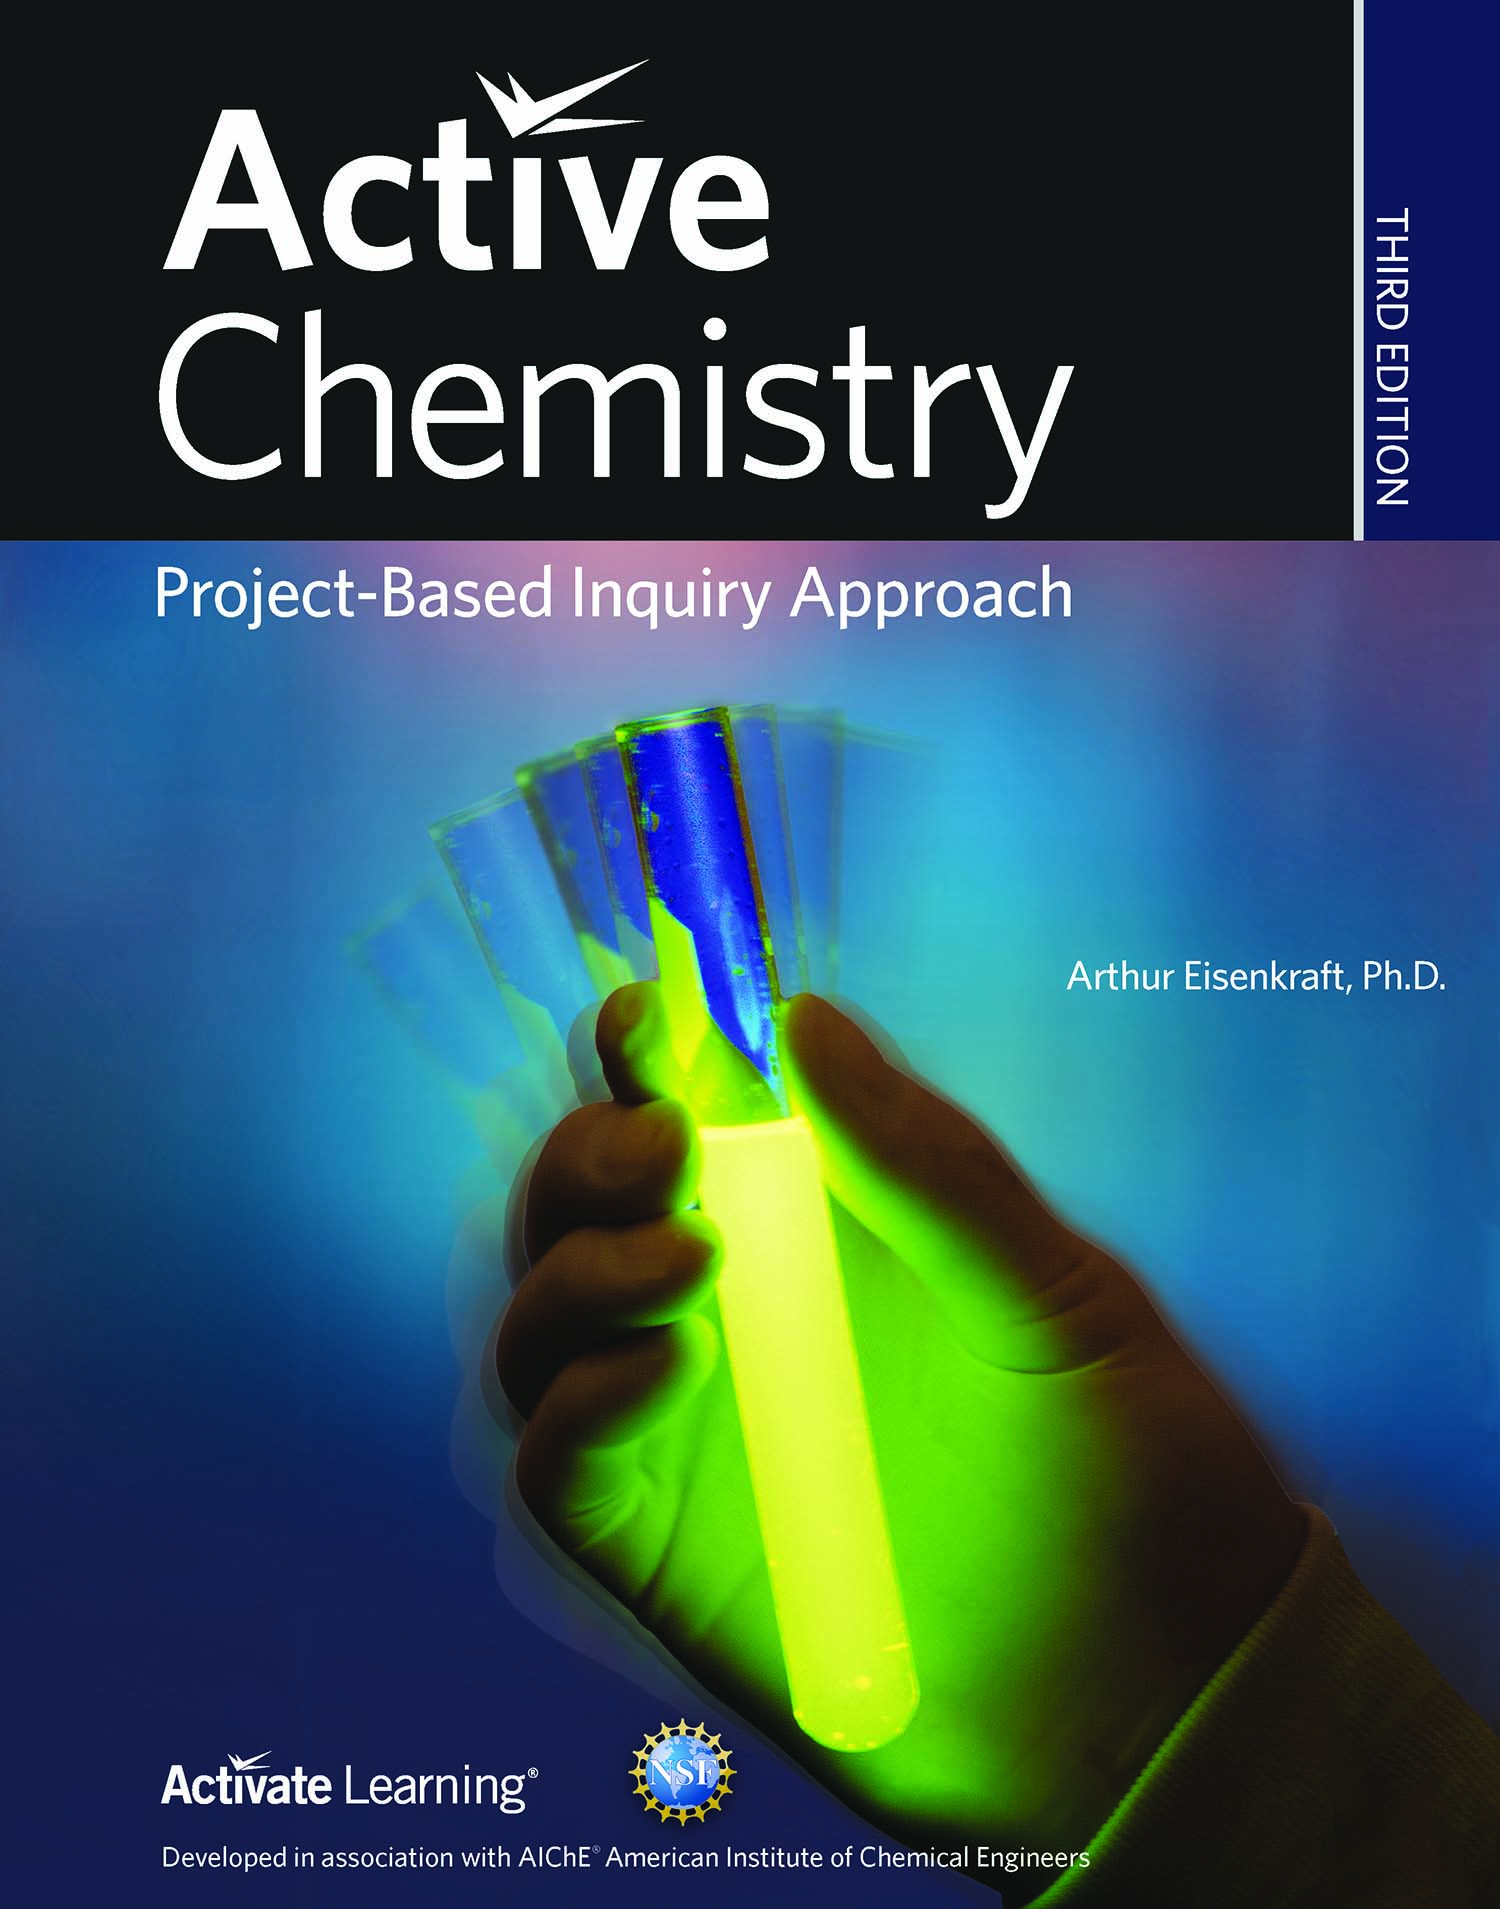 Active Chemistry 2nd edition Student Edition online ebook (1-year subscription)